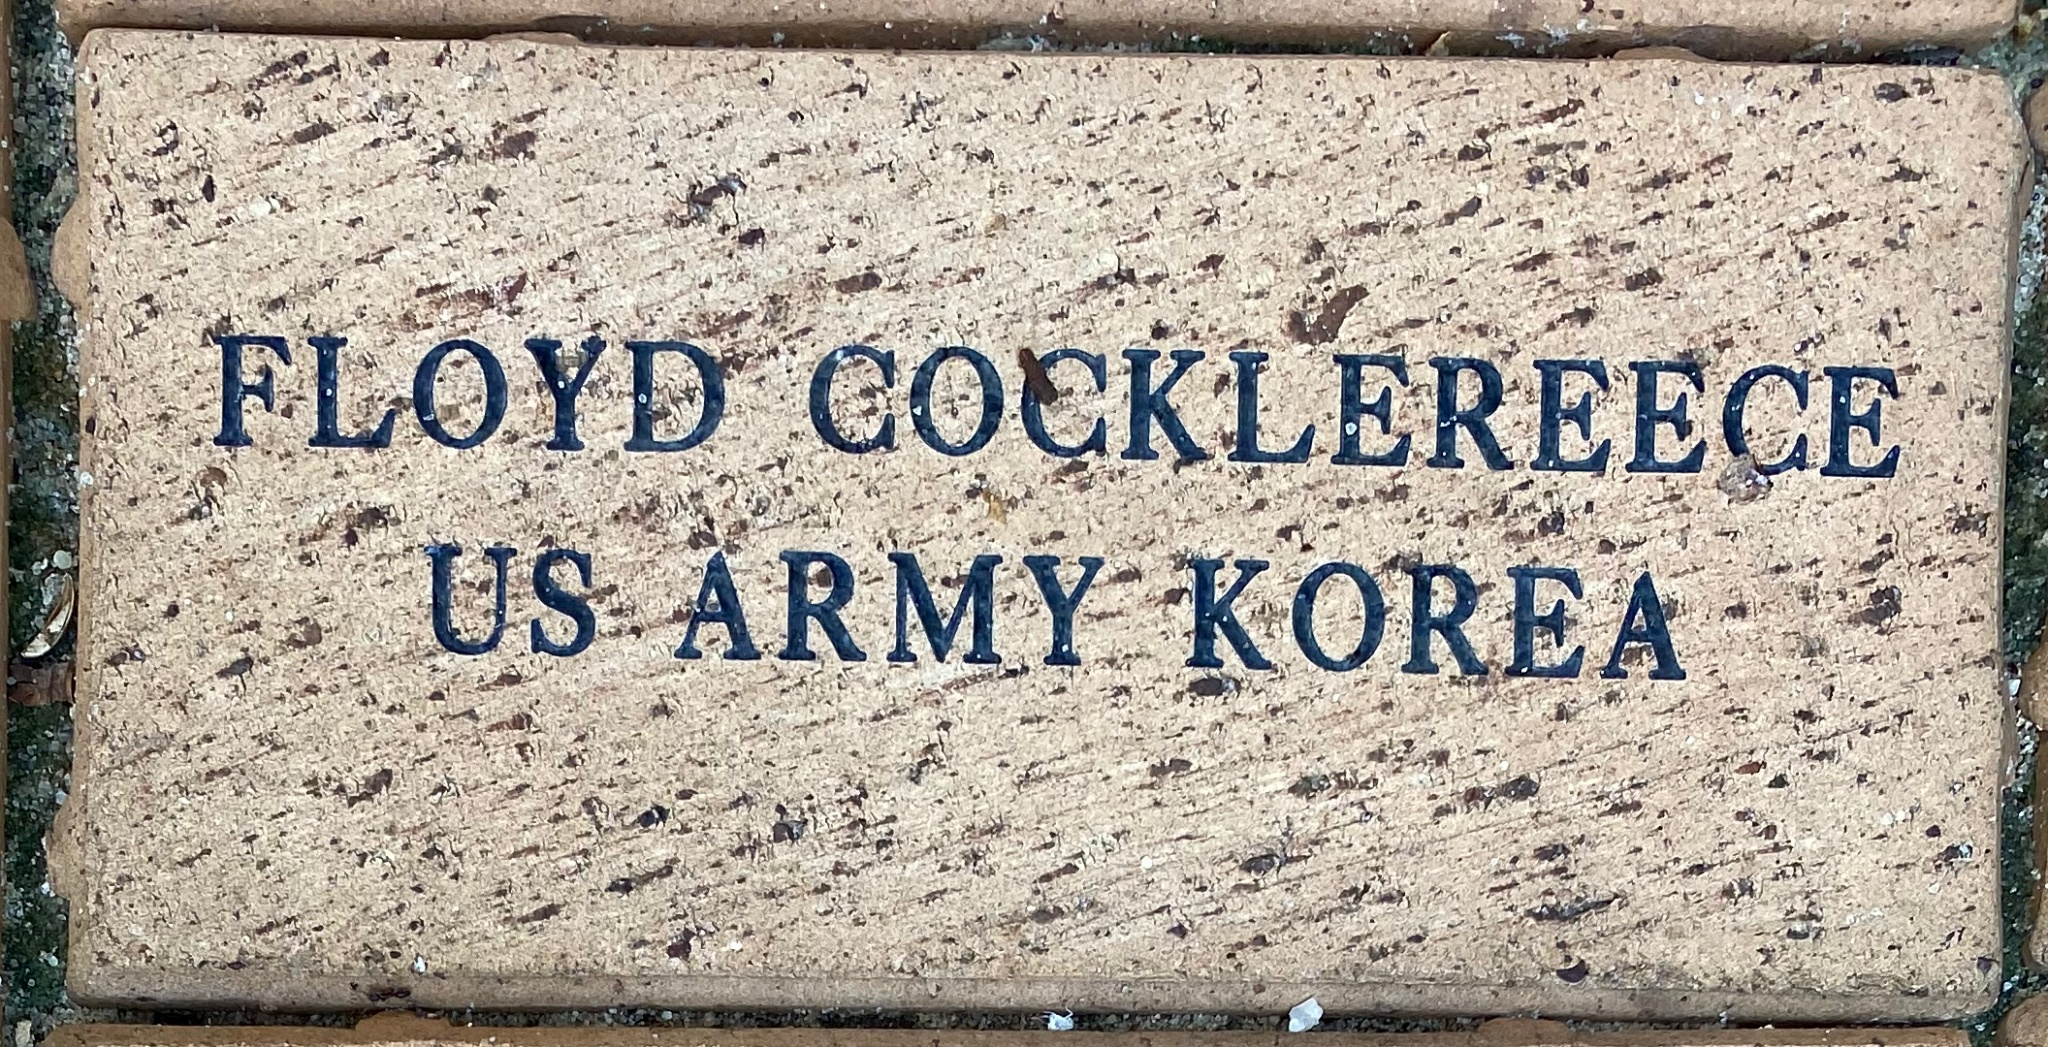 FLOYD COCKLEREECE US ARMY KOREA